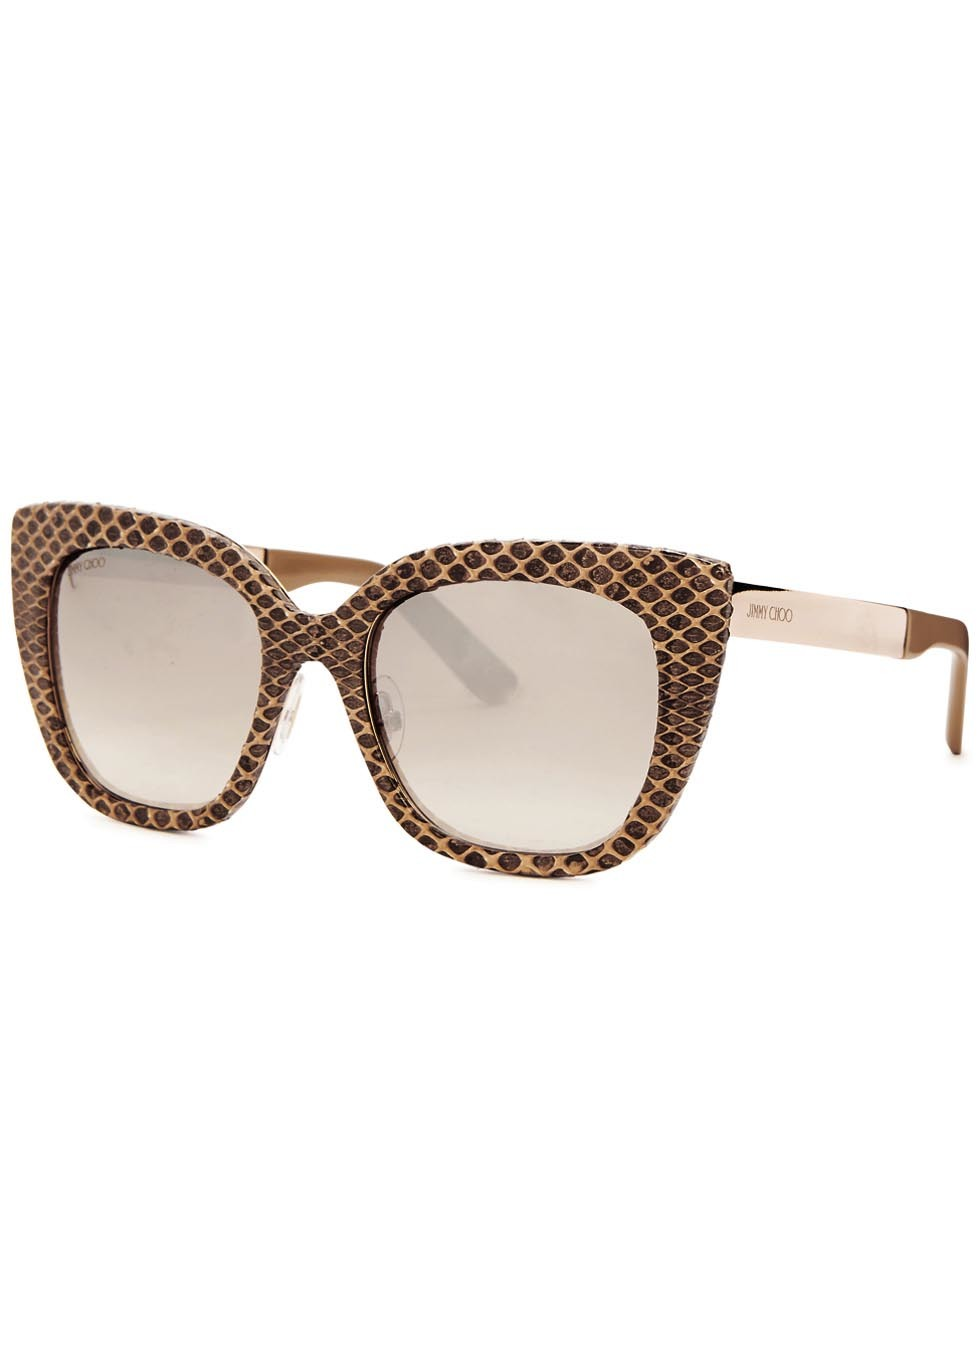 Nita Snake Effect Leather Cat Eye Sunglasses - predominant colour: chocolate brown; occasions: casual, holiday; style: cateye; size: large; material: plastic/rubber; finish: plain; pattern: patterned/print; season: a/w 2015